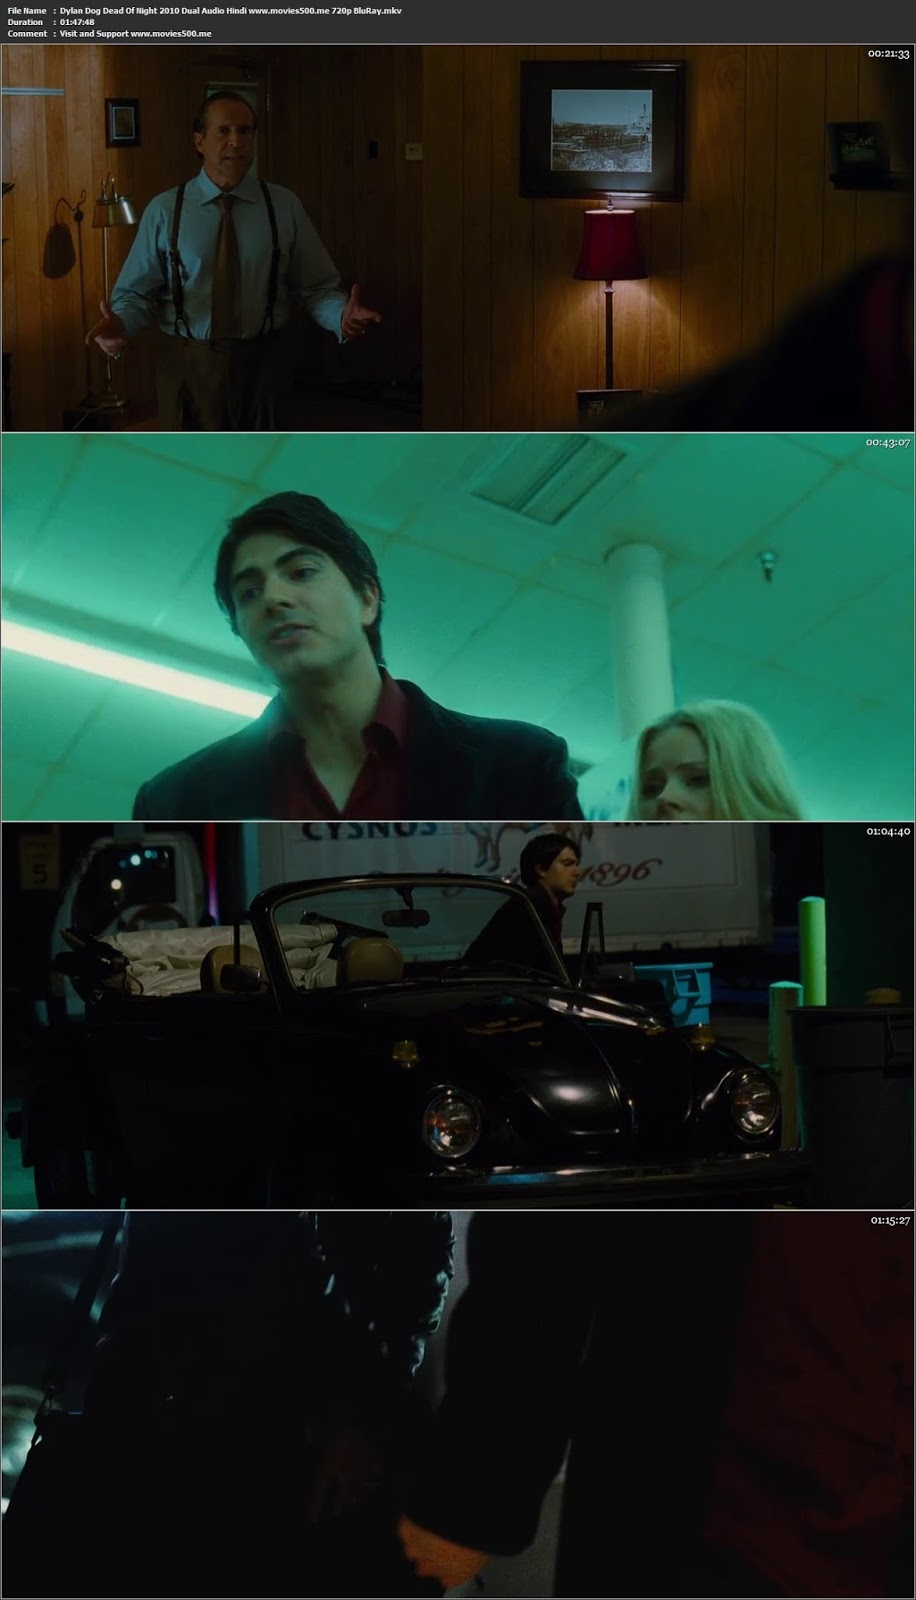 Dylan Dog Dead Of Night 2010 Dual Audio Hindi Eng BluRay 720p at movies500.me